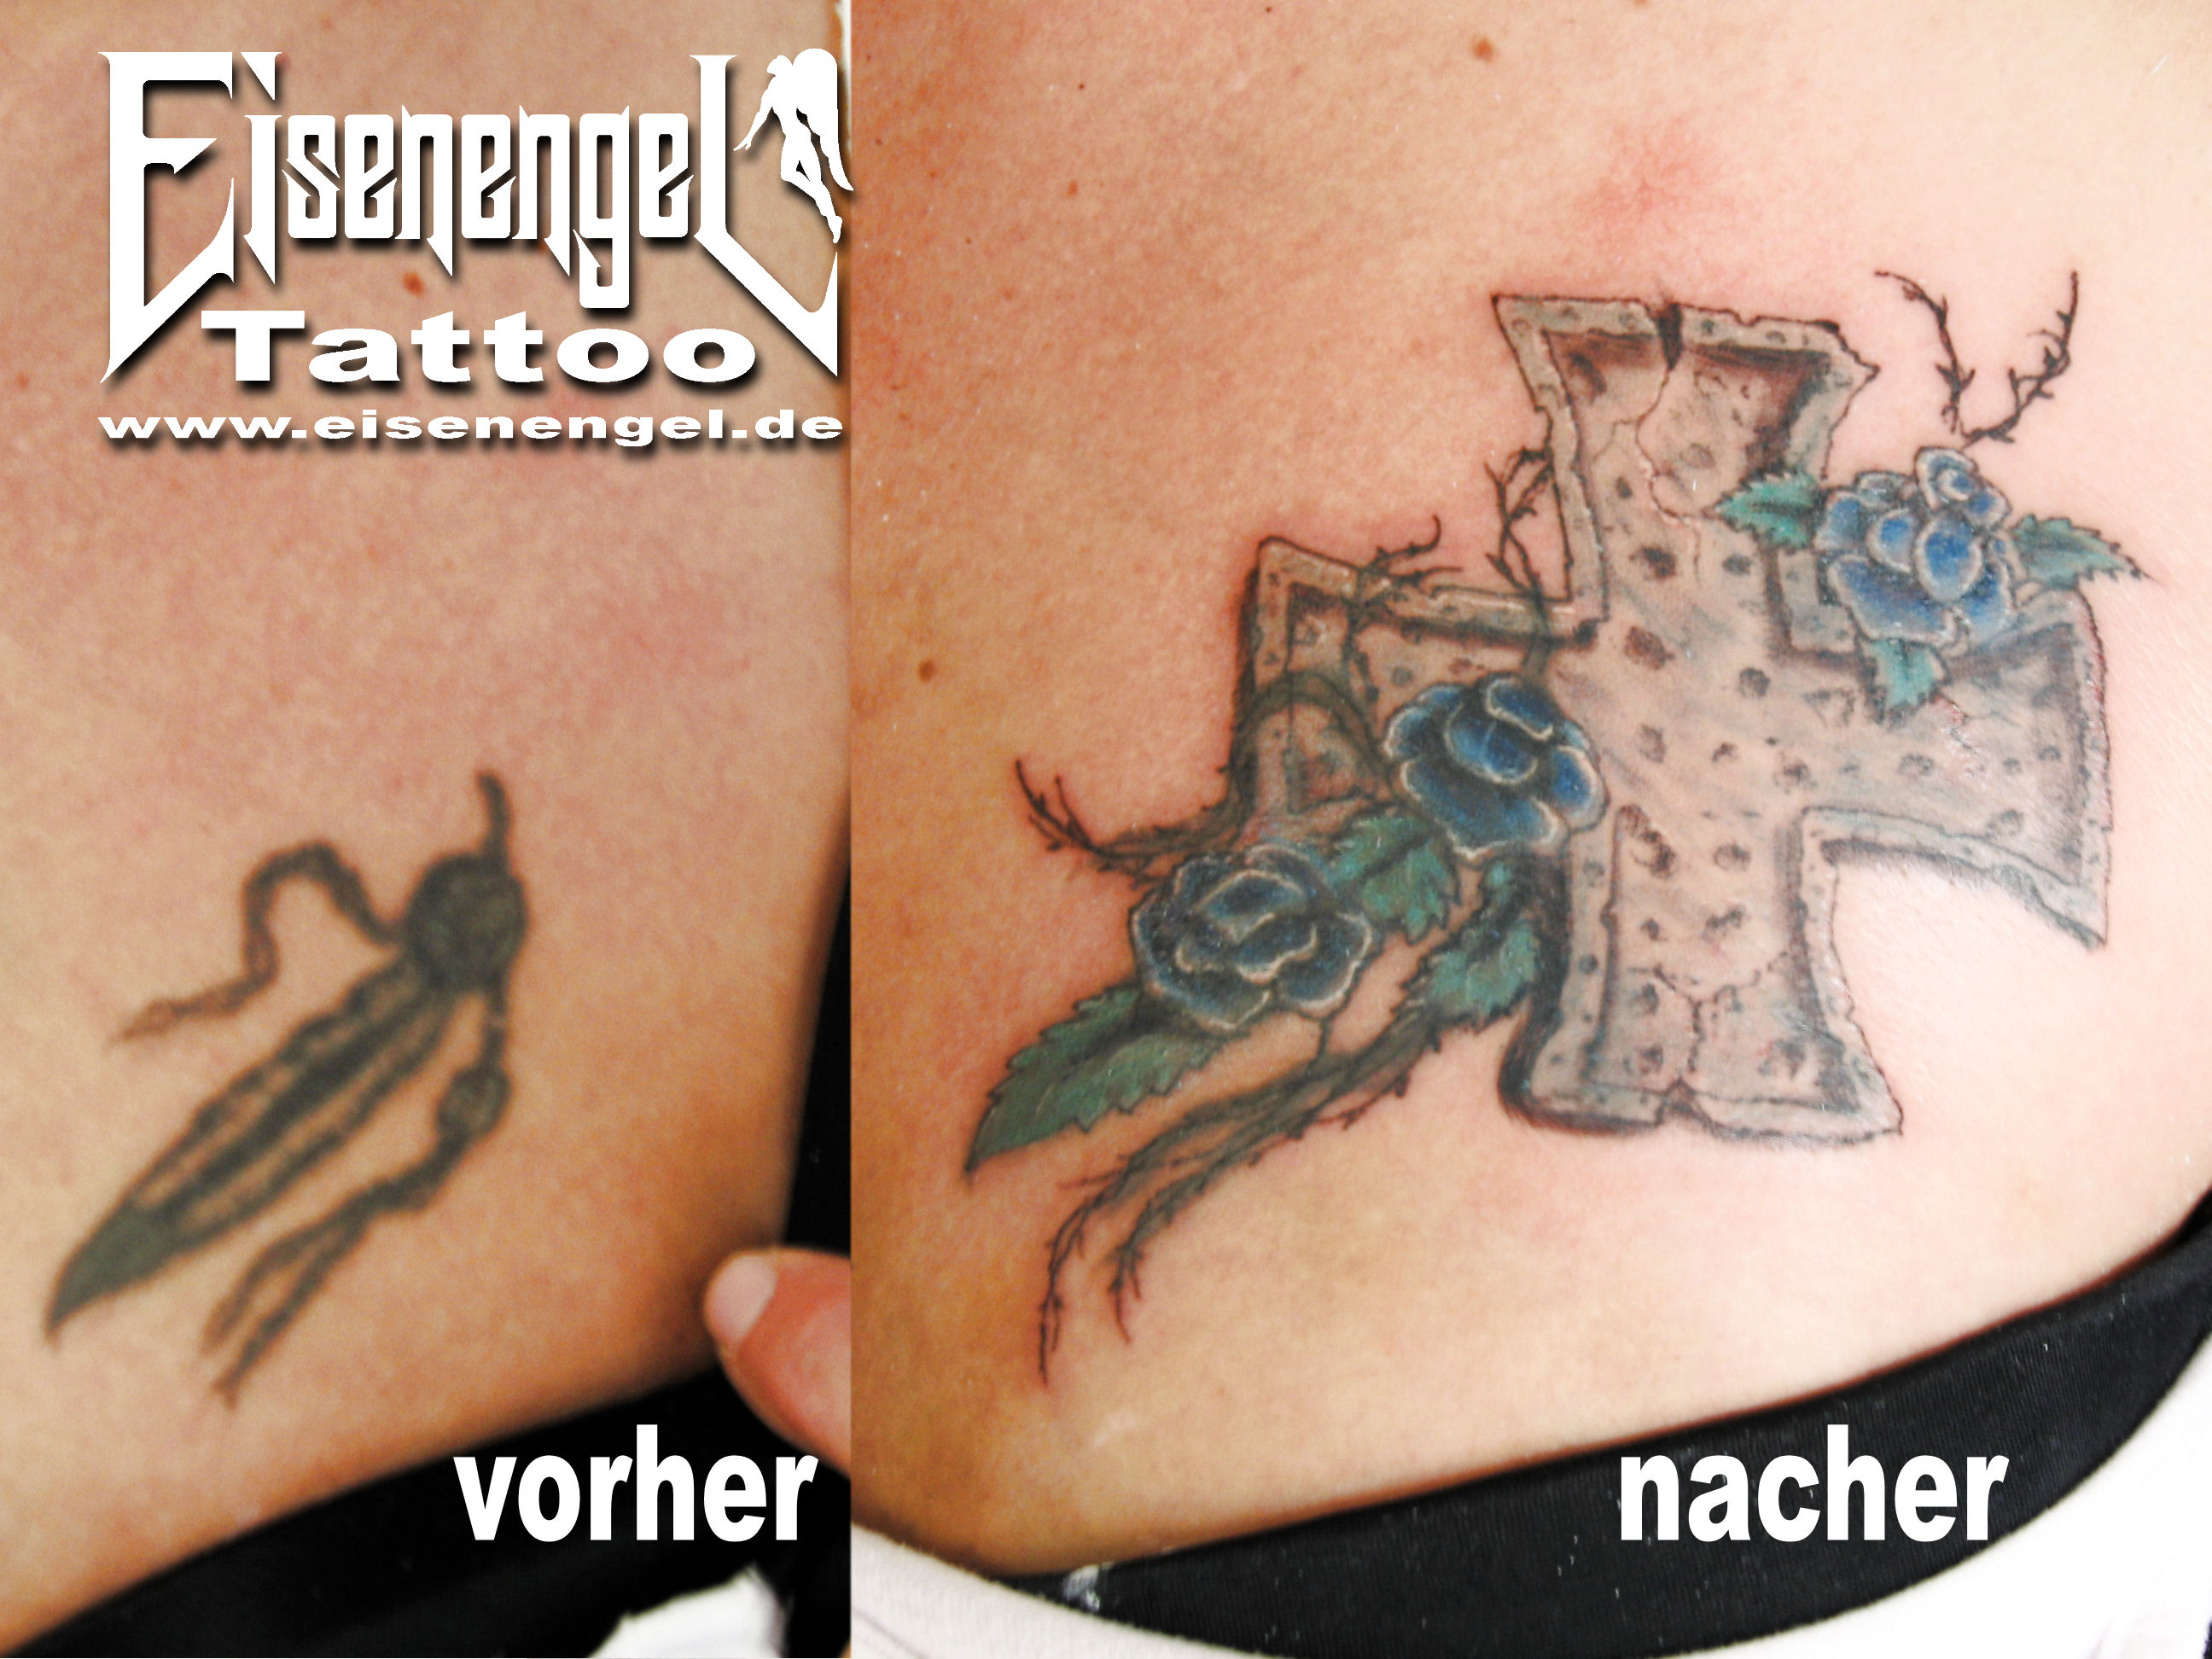 tattoo_coverup_kreuz_rosen.jpg